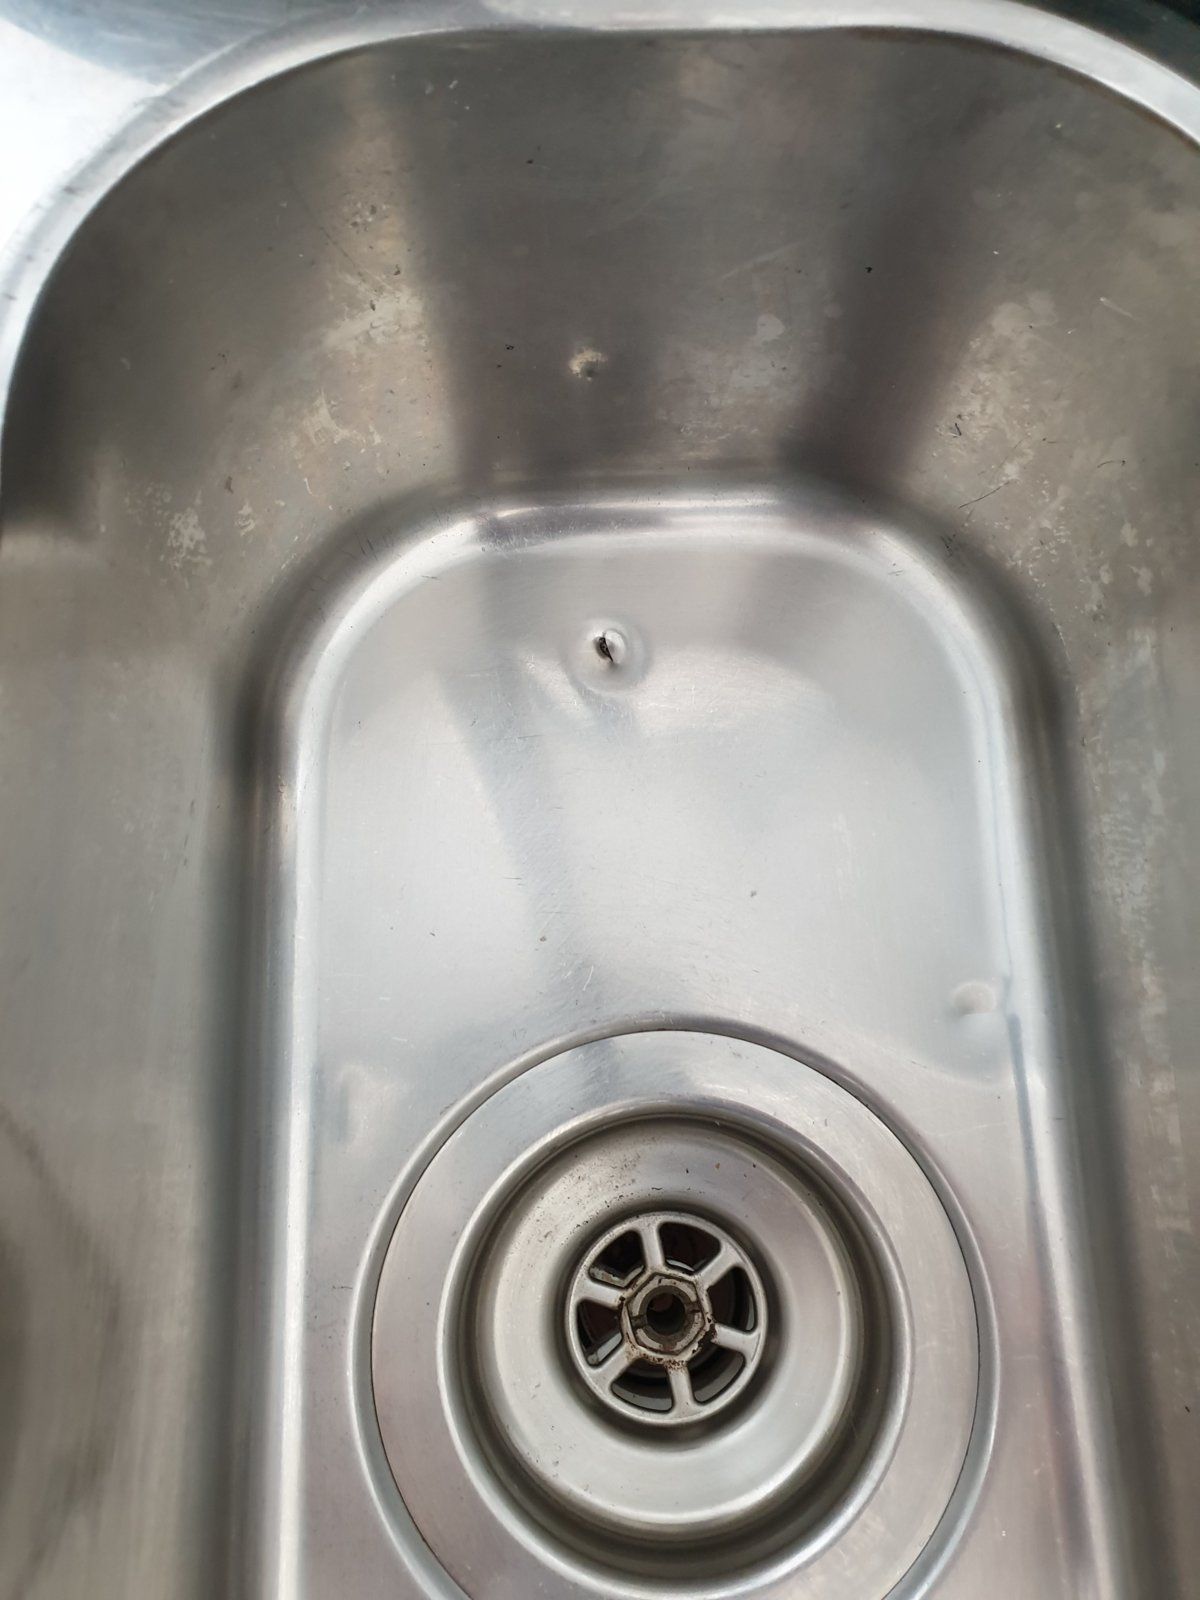 How To Repair Small Hole In Stainless Steel Sink Diynot Forums